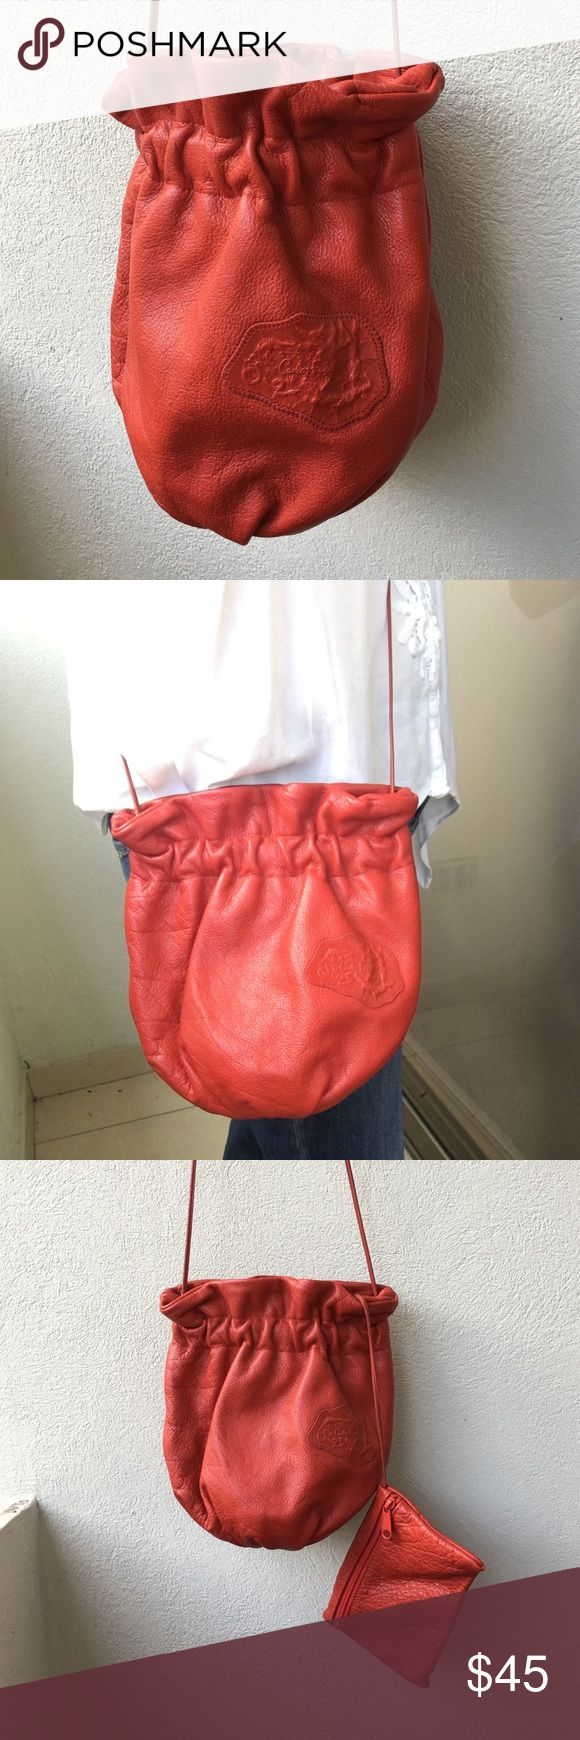 """Carlos Falchi Vintage Red Leather Crossbody Preowned Carlos Falchi Vintage Red Leather Crossbody. Barely worn. Measures 9"""" x 10"""" inches. Strap is 49"""" inches. Please look at pictures for better reference. Happy shopping!! Carlos Falchi Bags Crossbody Bags"""